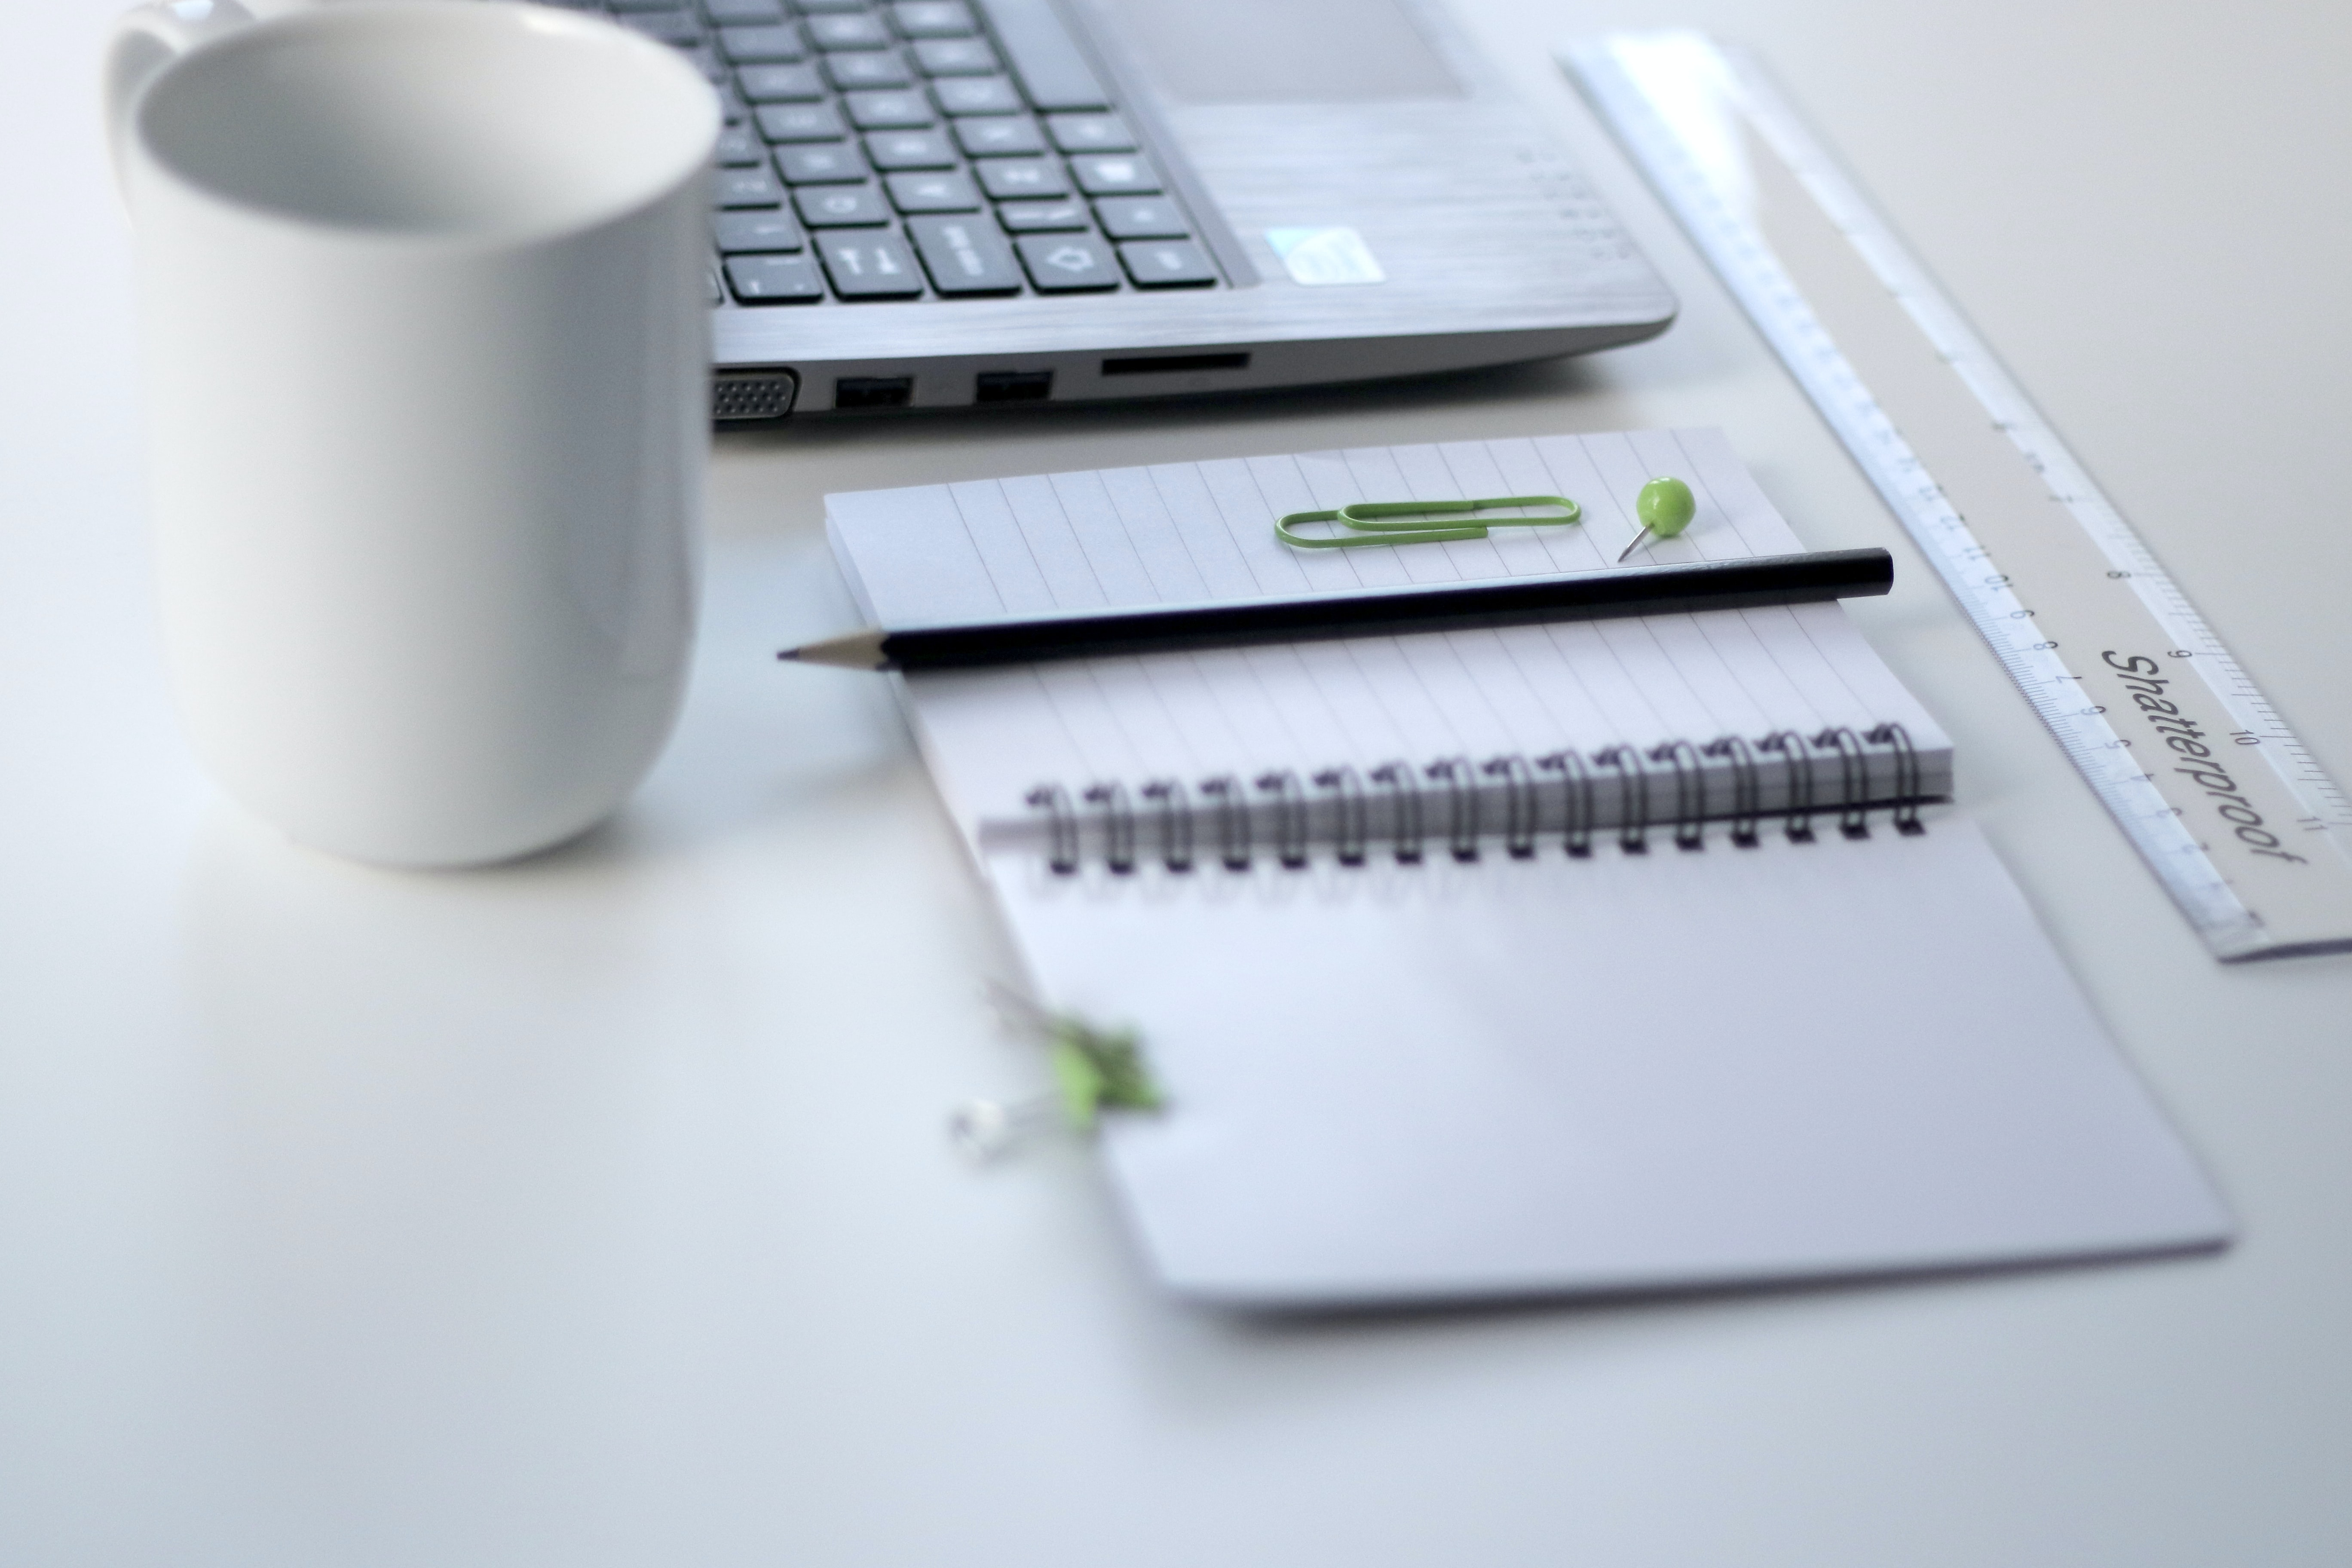 A notepad, a ruler, a mug and a laptop on a white desk